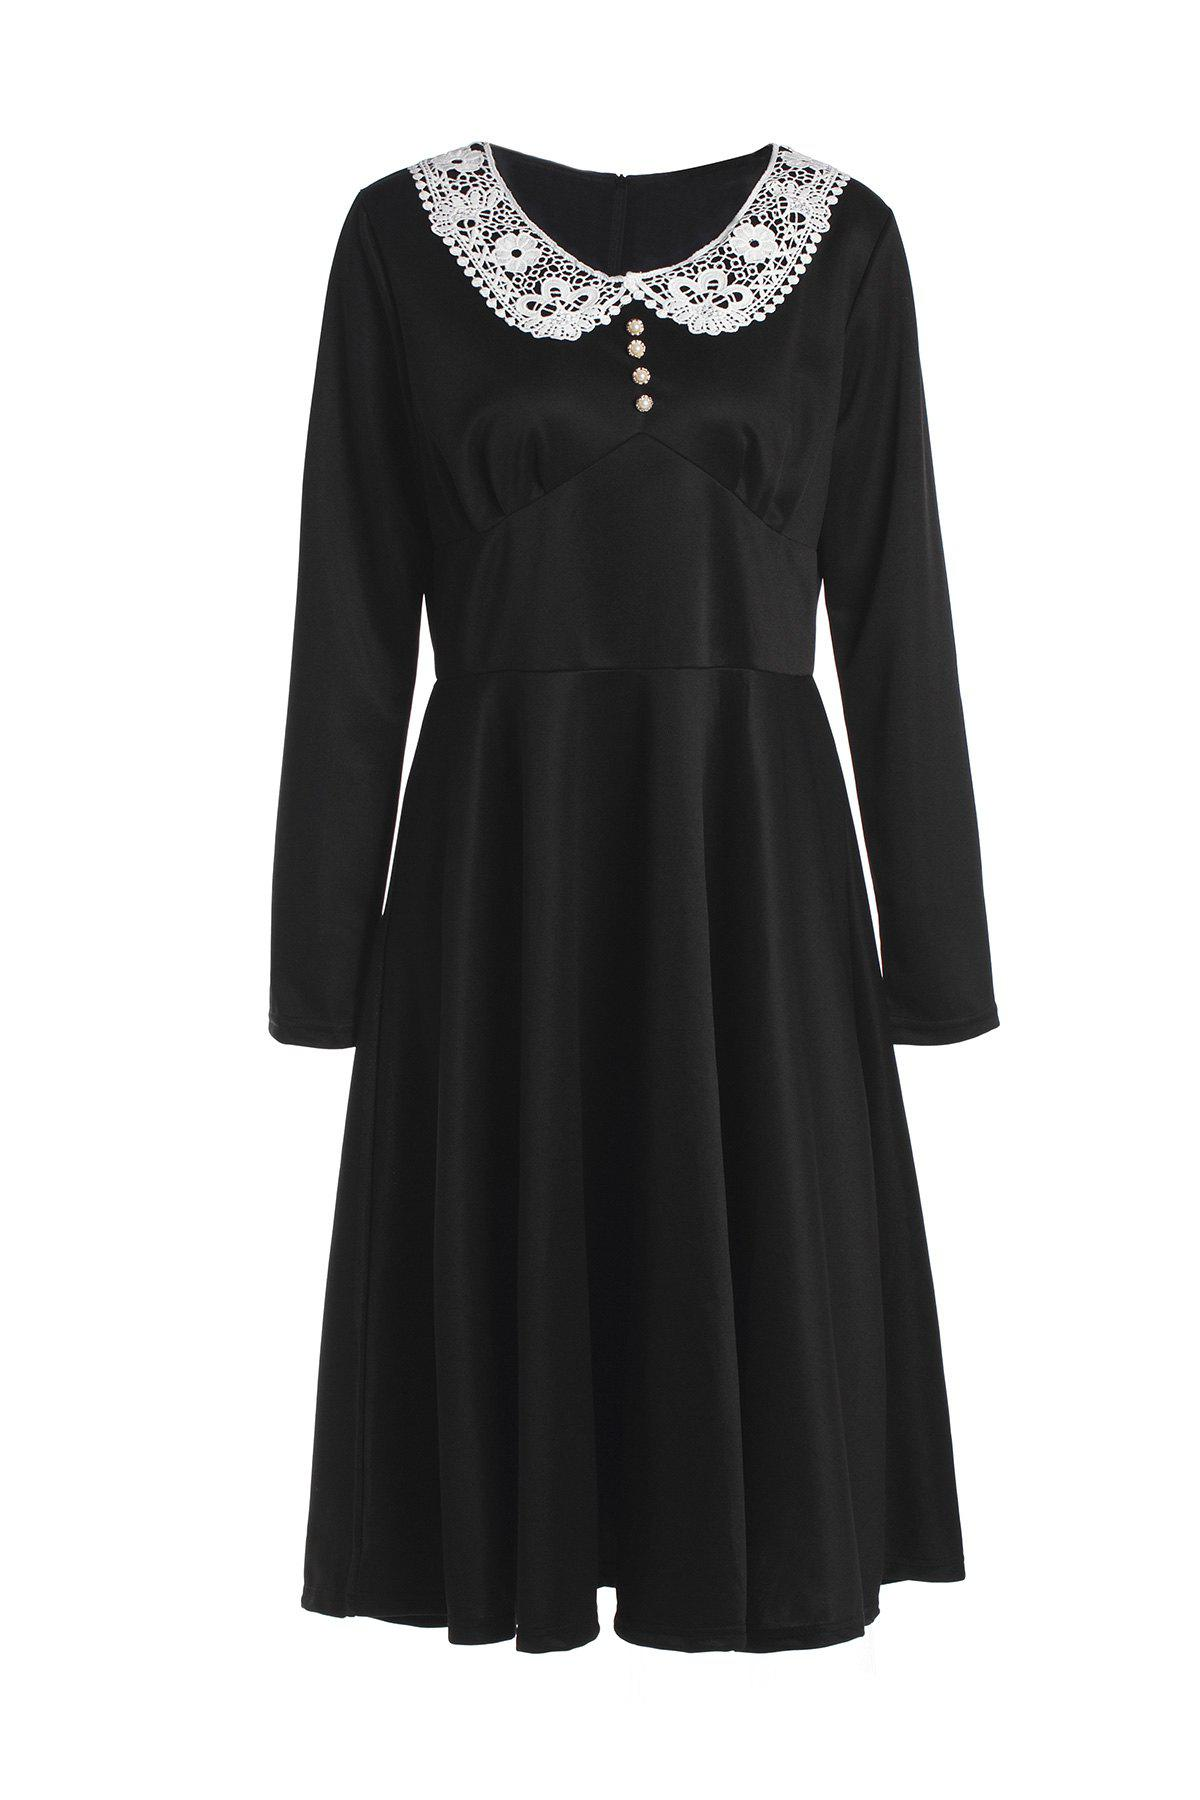 Noble Long Sleeve Peter Pan Collar Lace Spliced Women's Dress - BLACK M